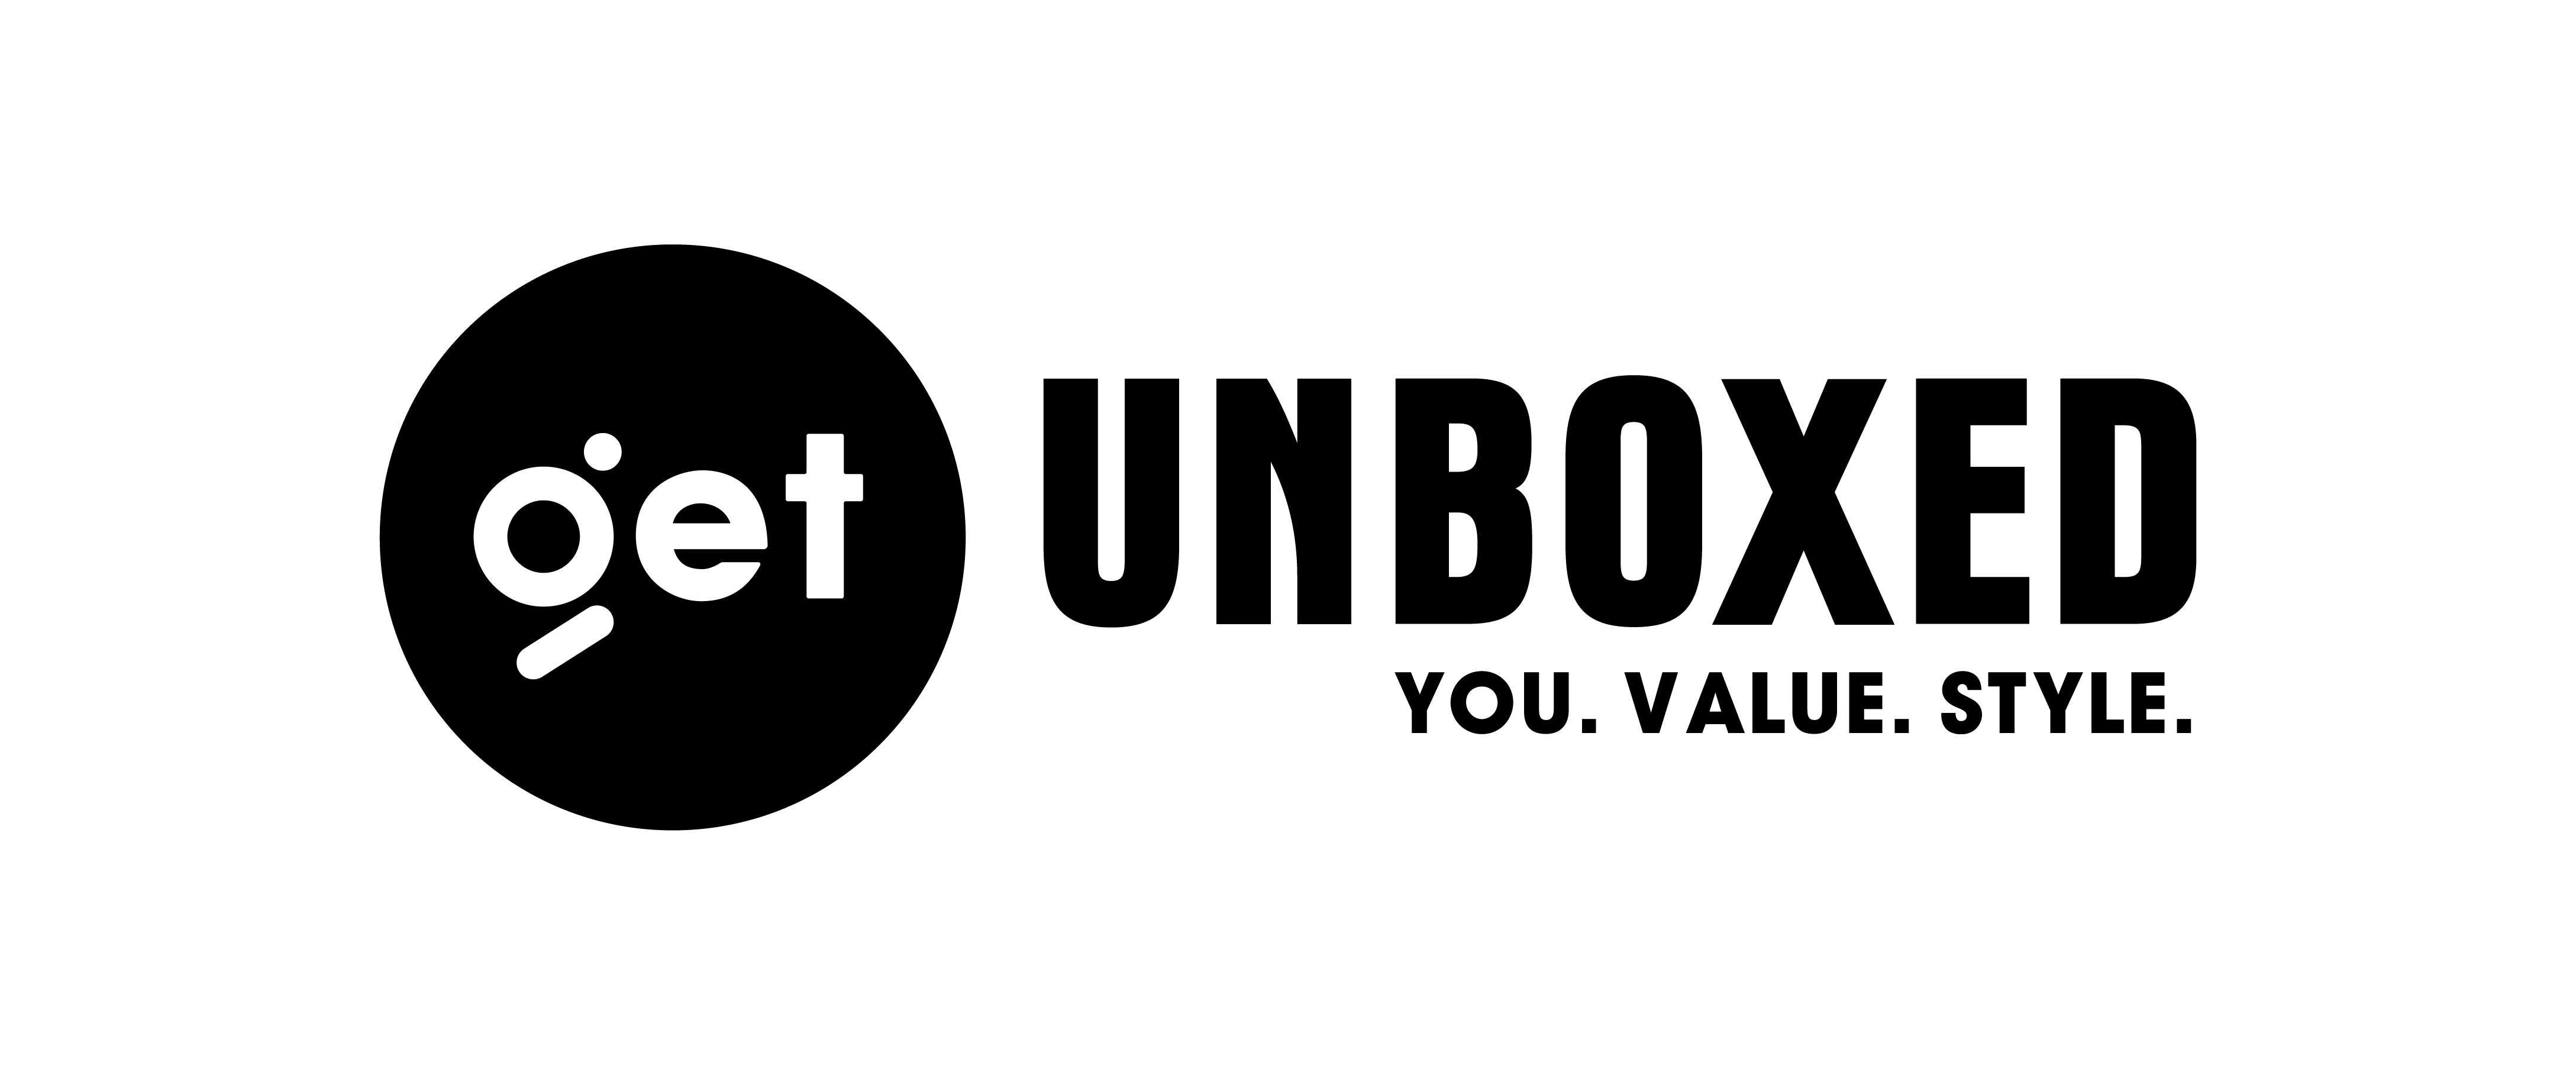 Get Boxed